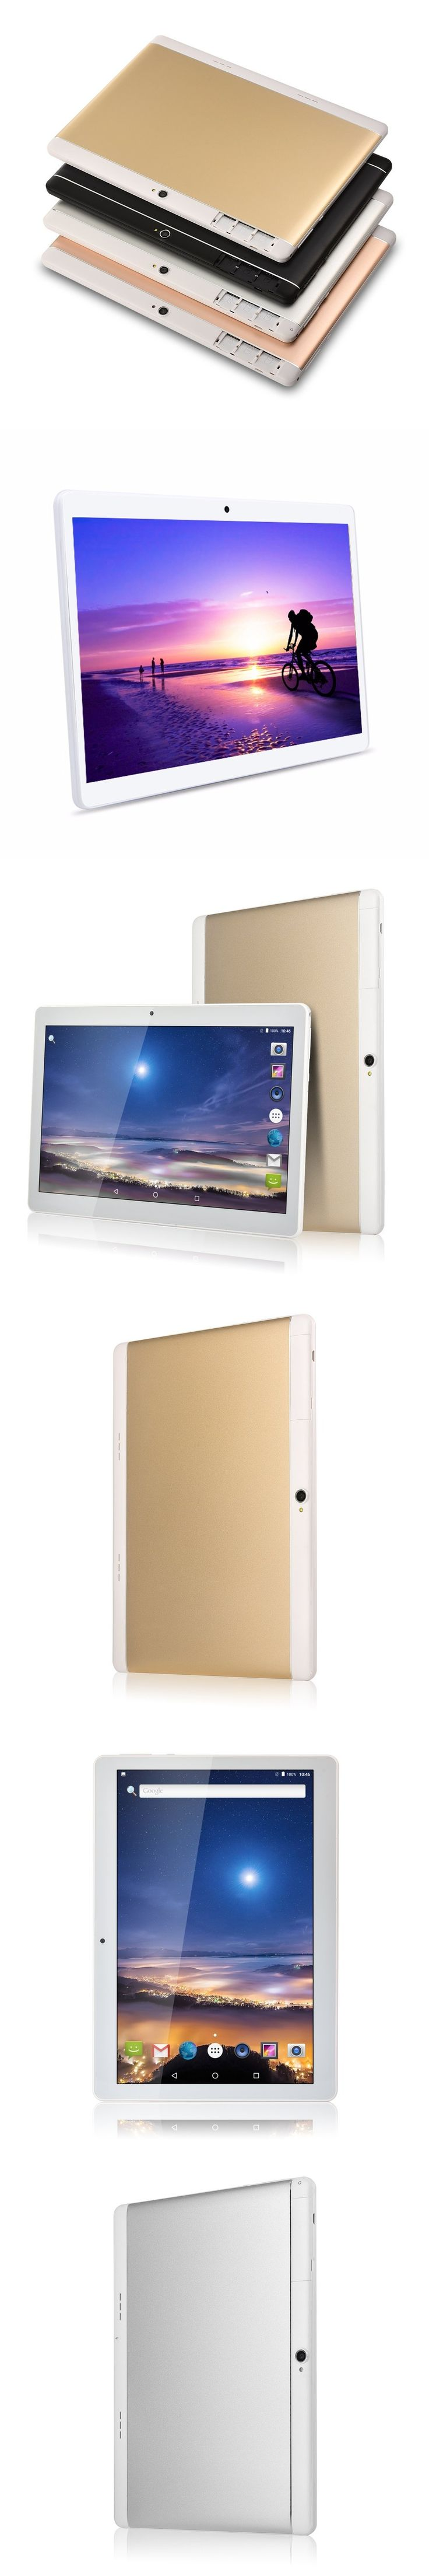 DONGPAD 10 inch tablet pc 3G 4G LTE Network Octa Core 4GB RAM 32GB ROM 8 Cores 1920*1200 IPS HD Tablets 10 10.1 DHL Free ship